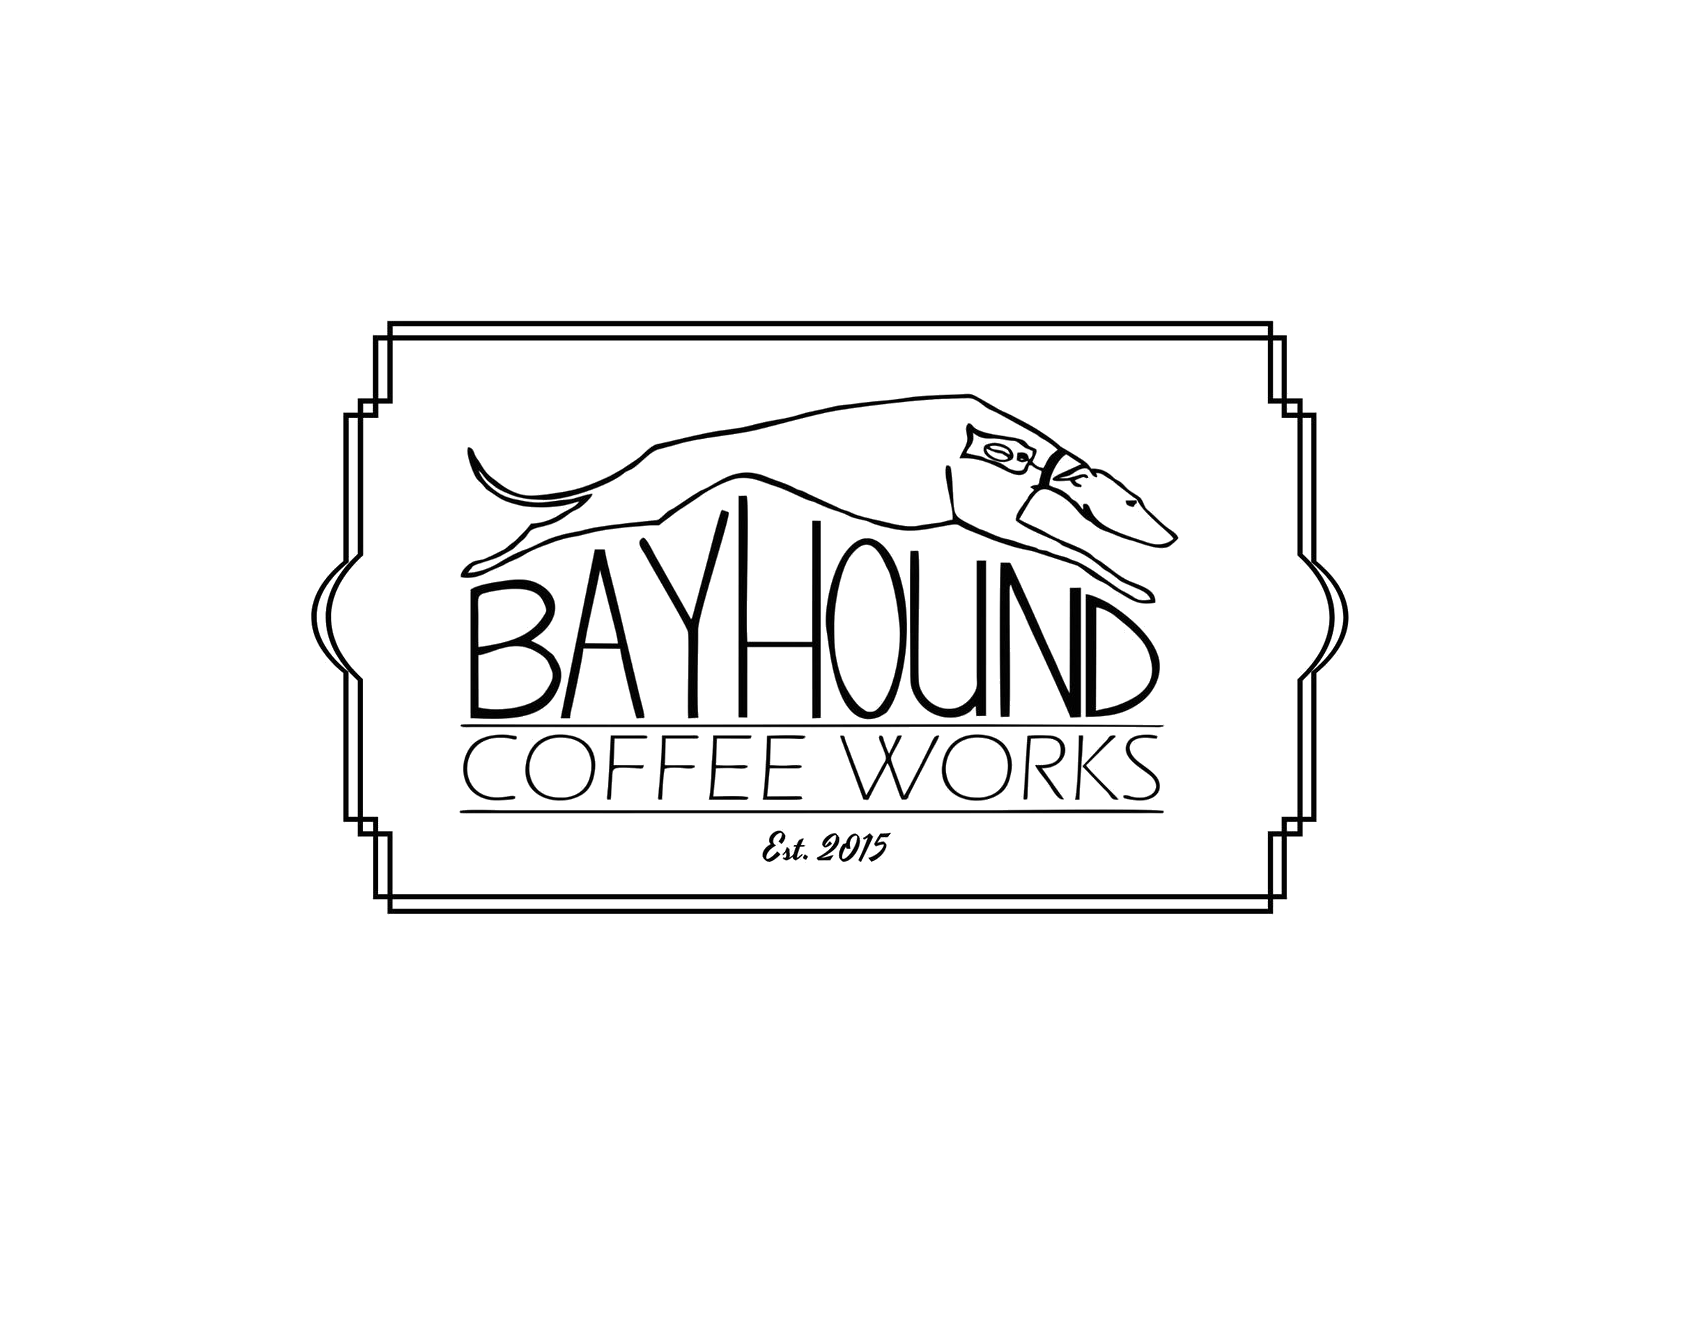 Bayfield Coffee Works - Polokwane